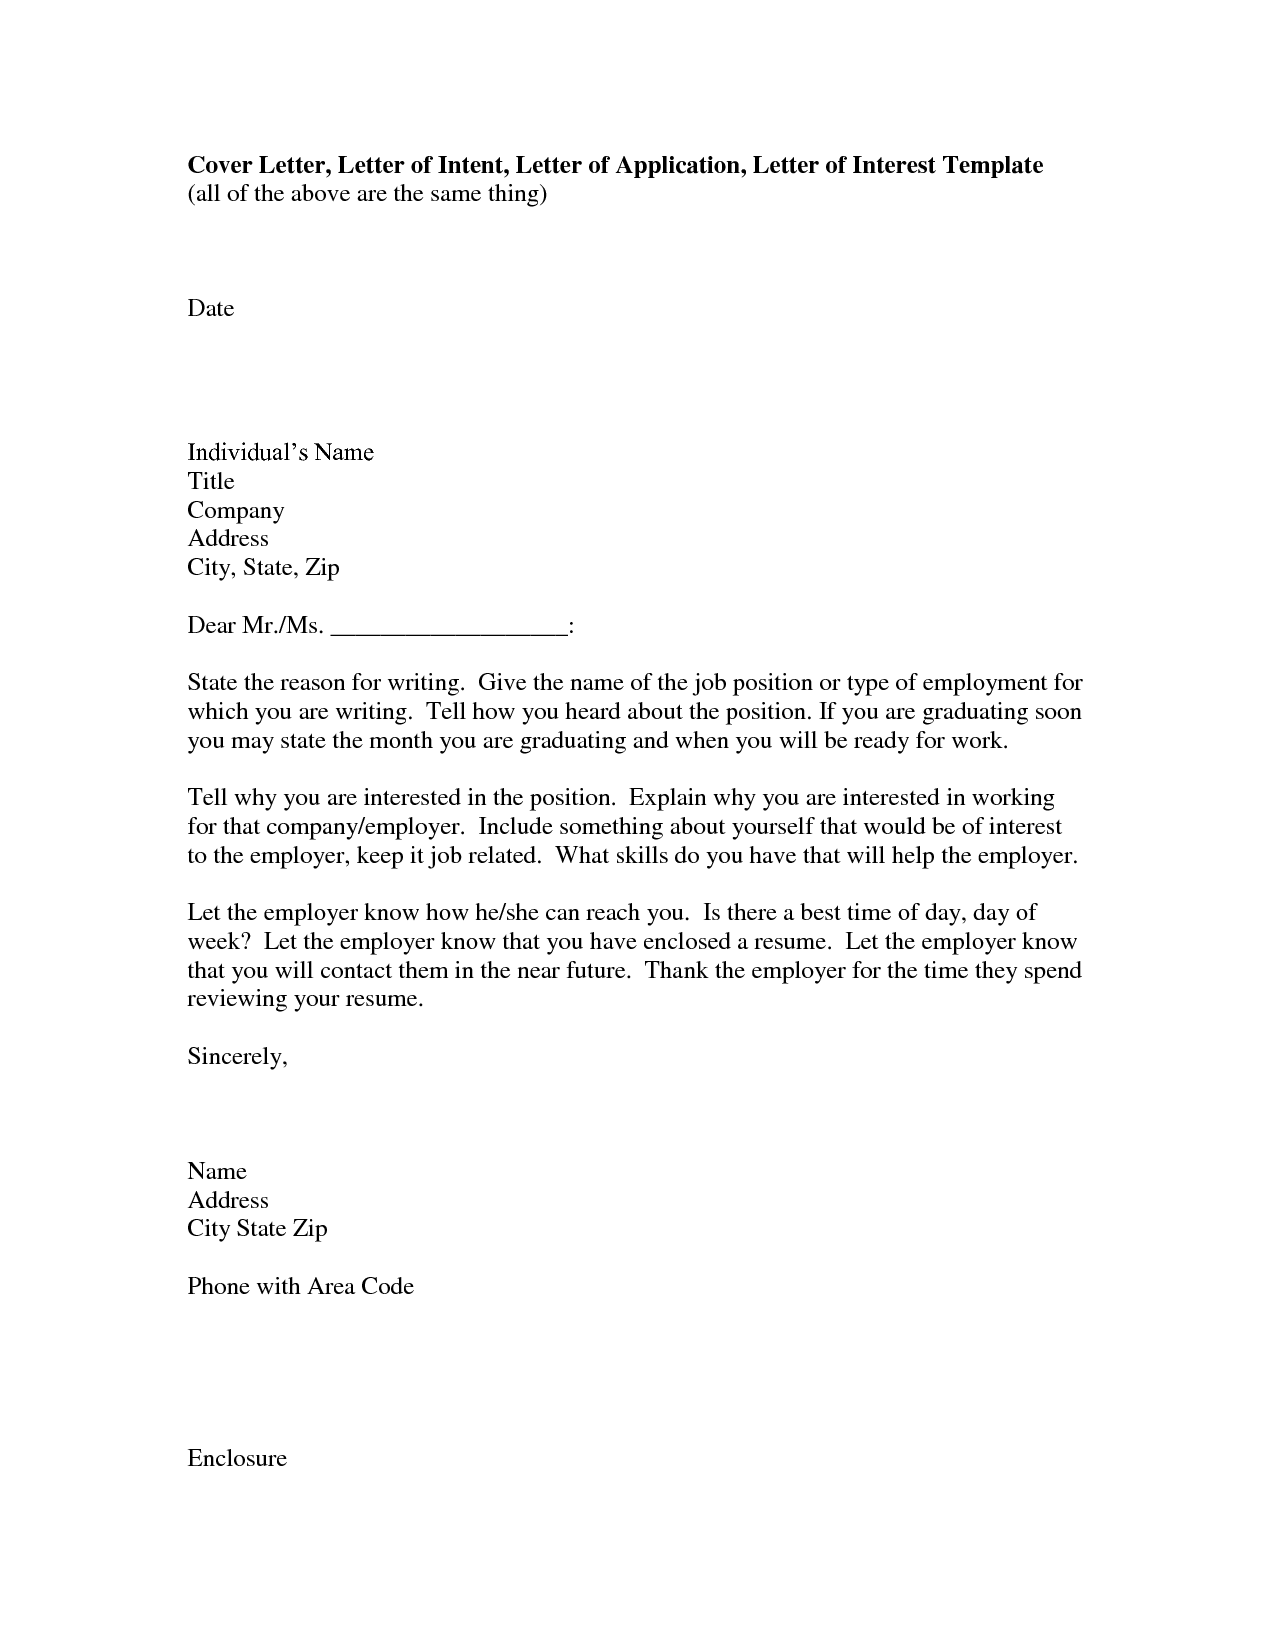 open office cover letter template download